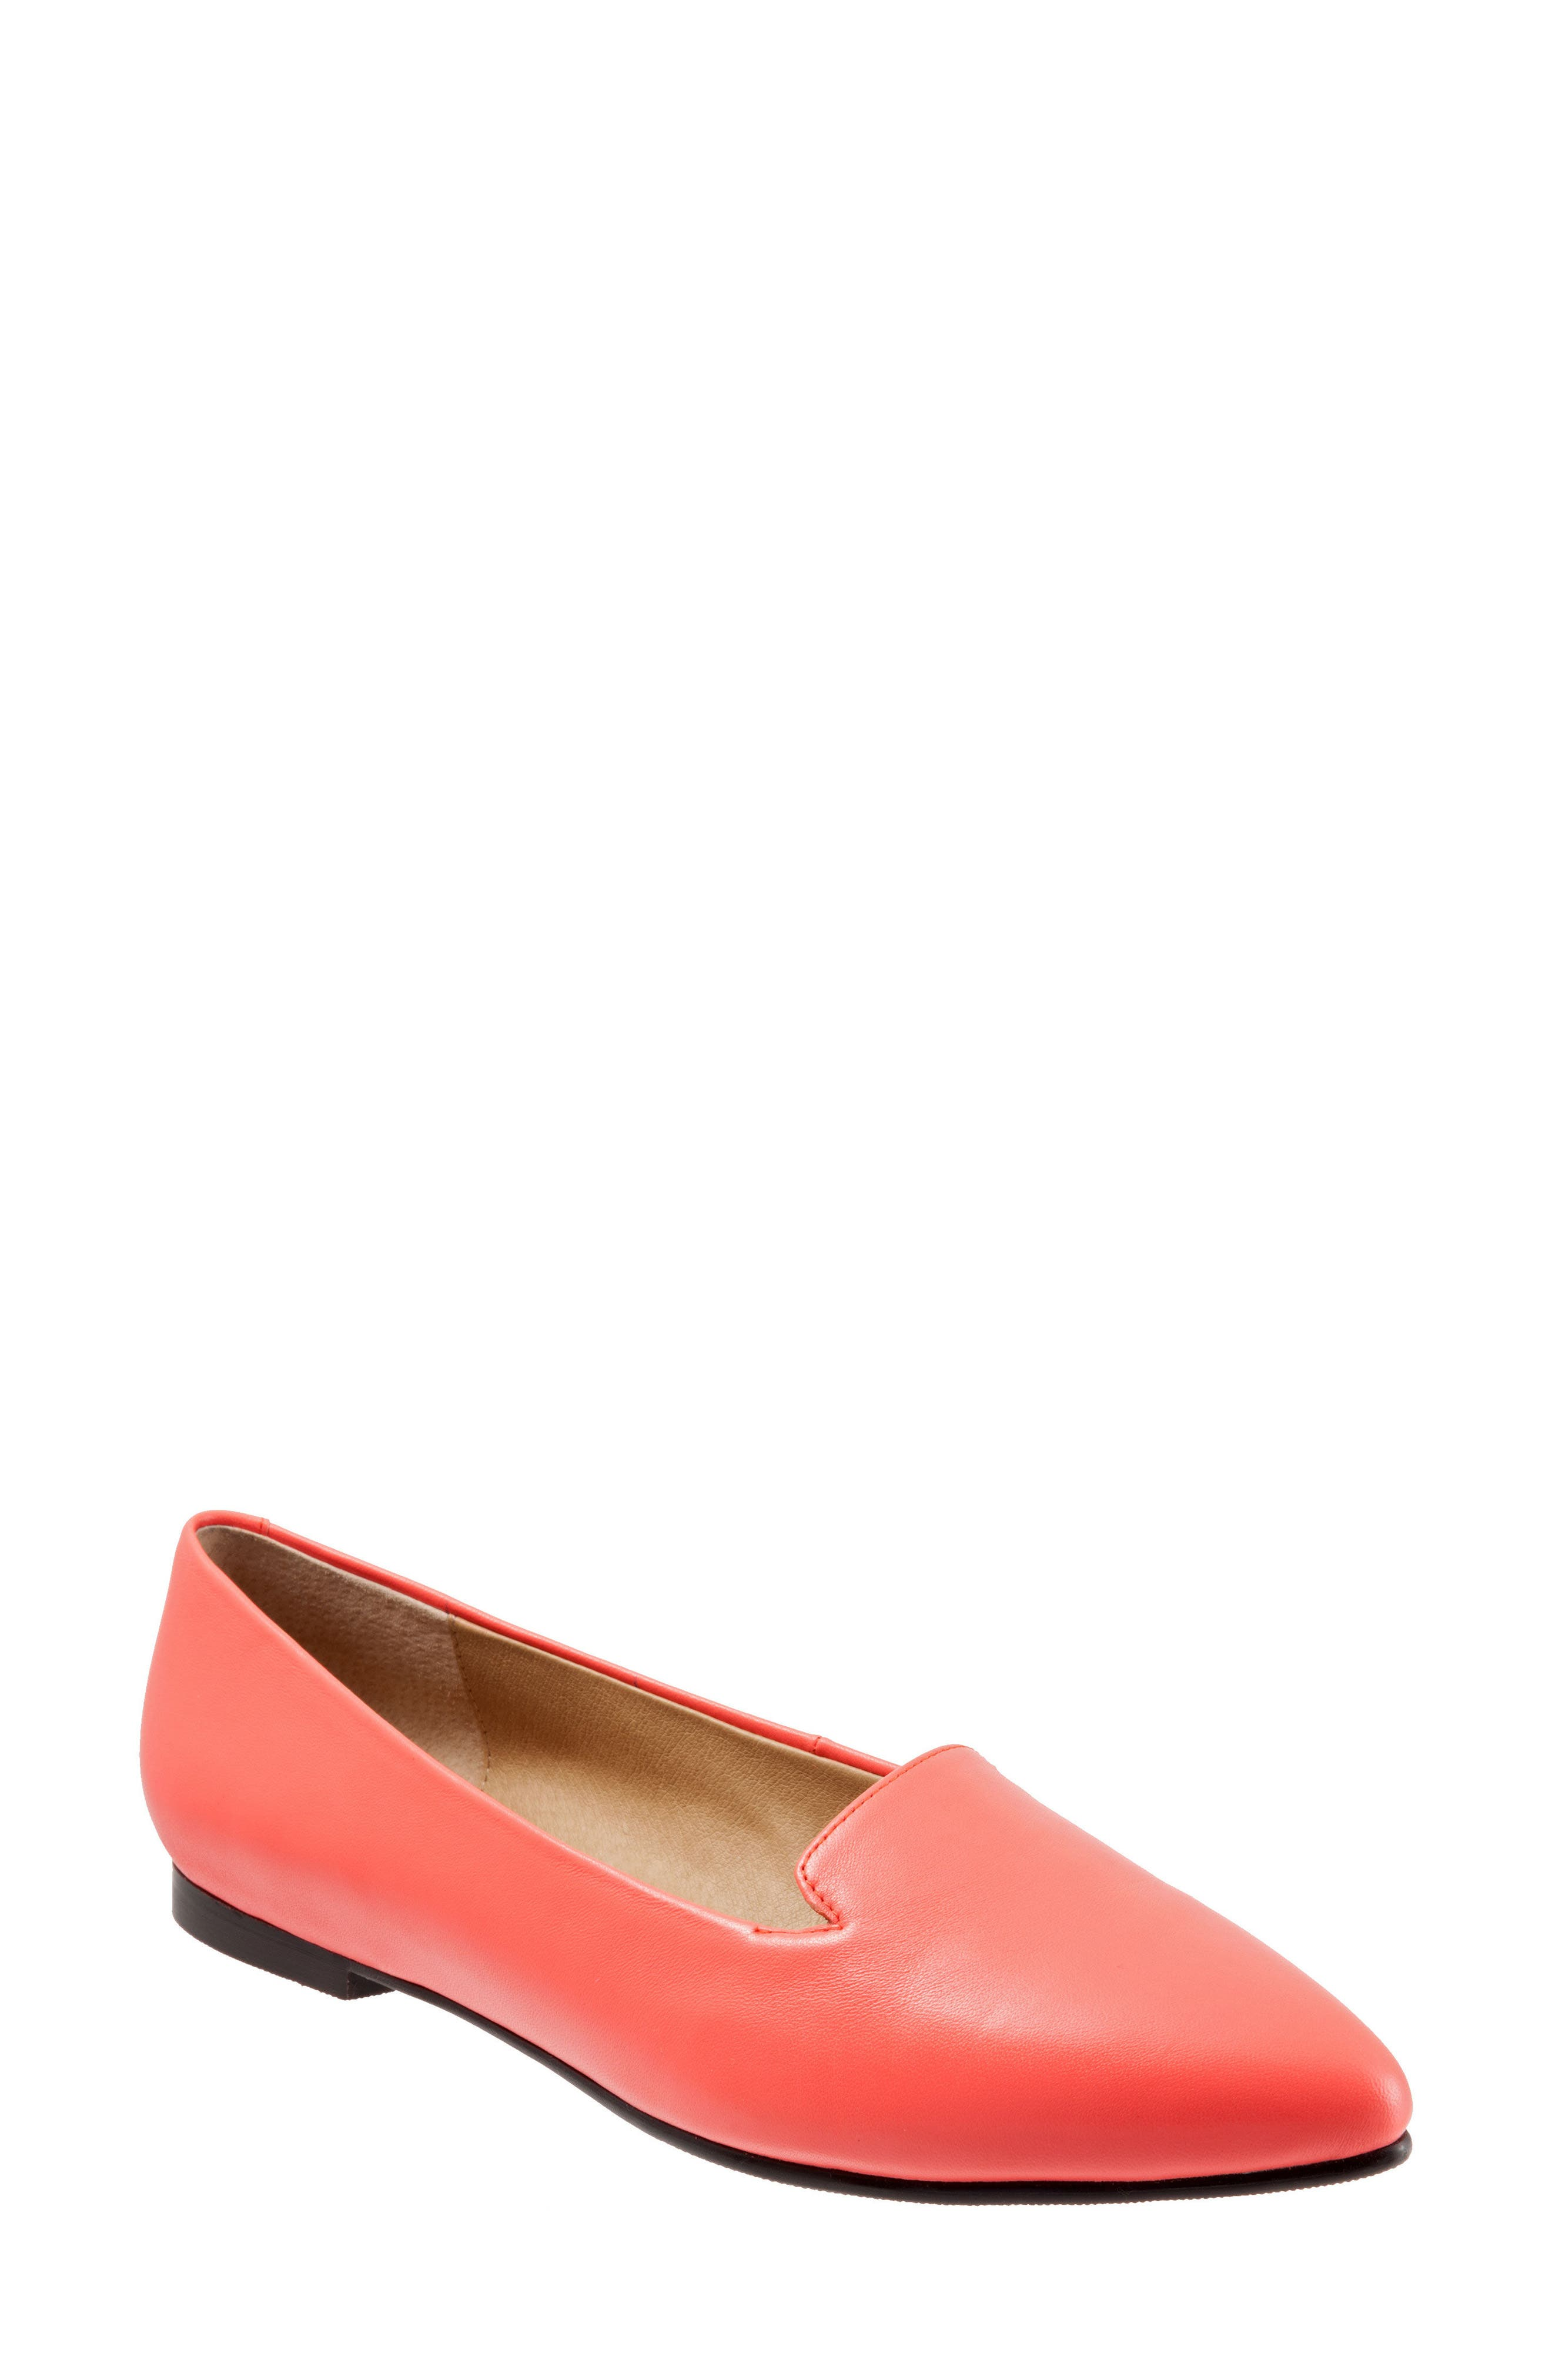 Main Image - Trotters Harlowe Pointy Toe Loafer (Women)